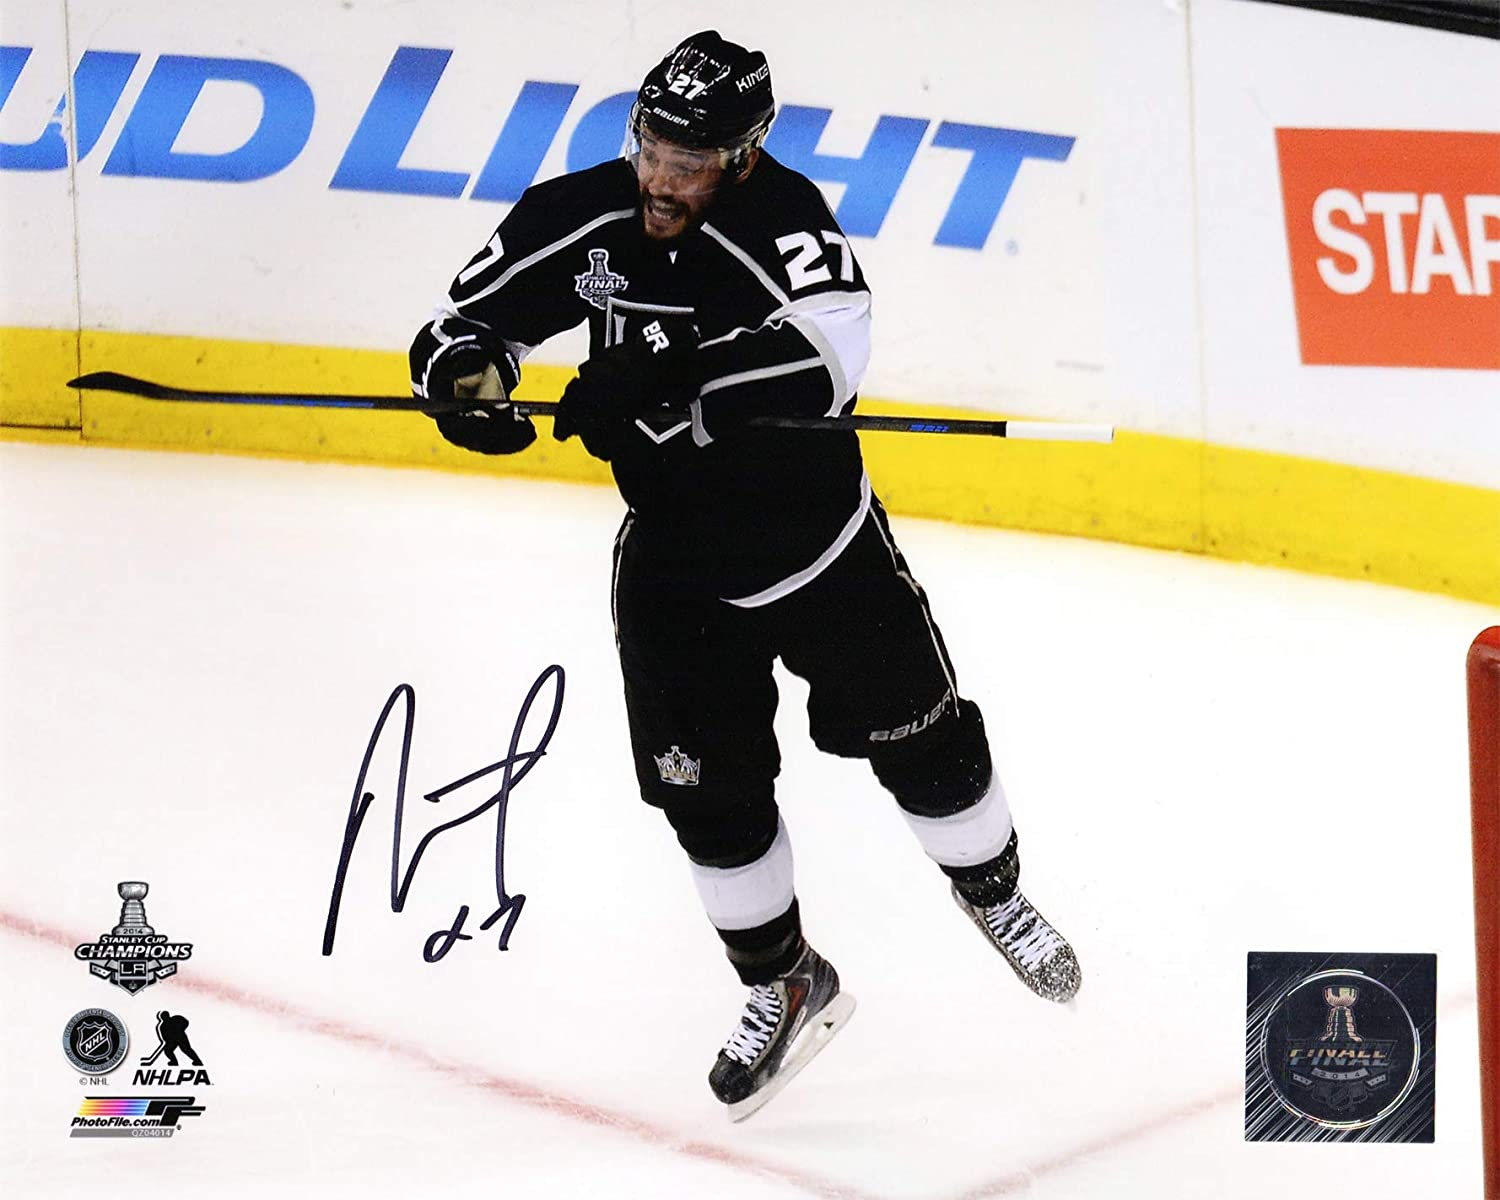 Alec Martinez Los Angeles Kings 2014 Stanley Cup Action 8x10 Photo